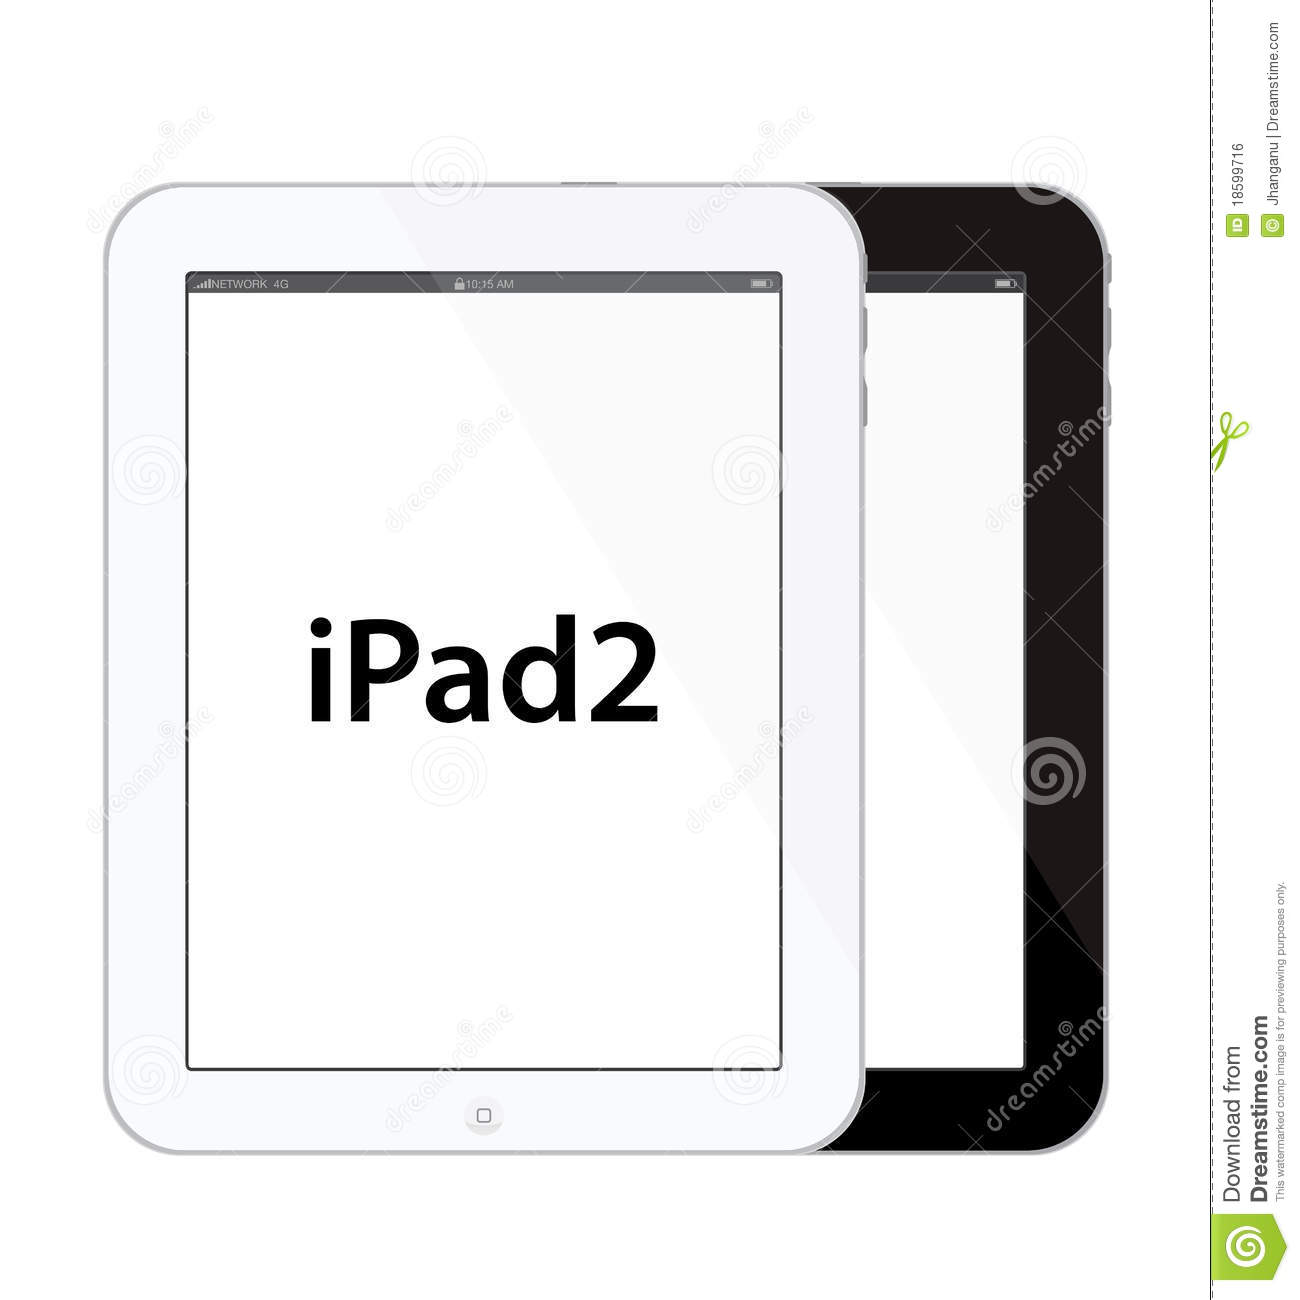 New Apple IPad 2.